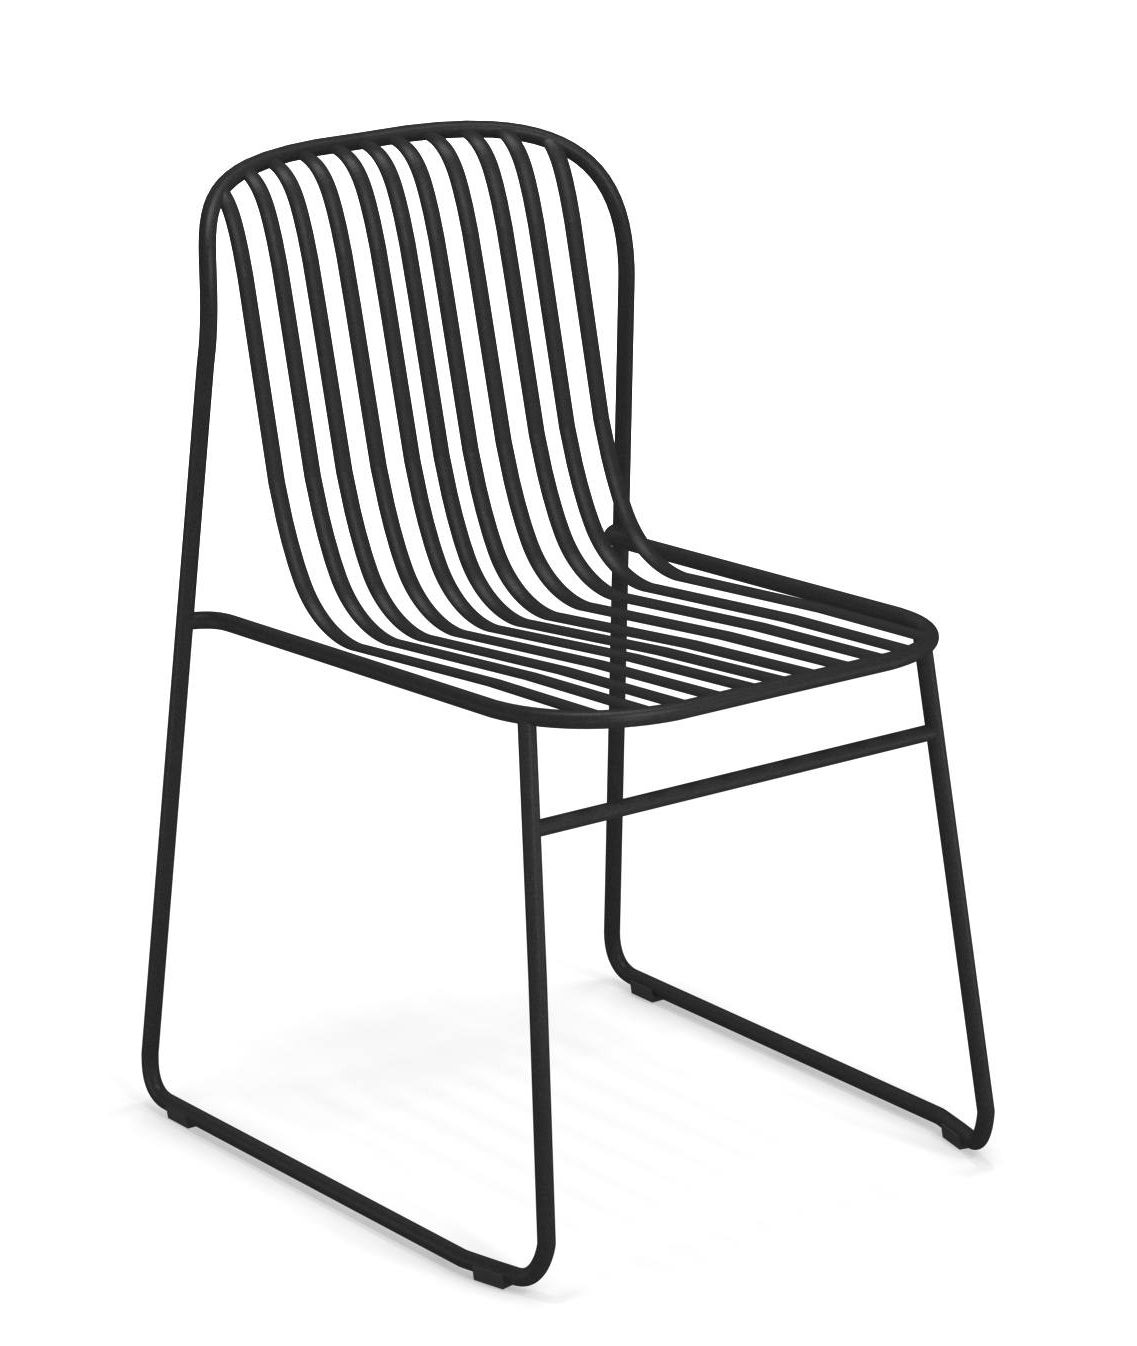 Furniture - Chairs - Riviera Stacking chair - / Metal by Emu - Black - Varnished steel